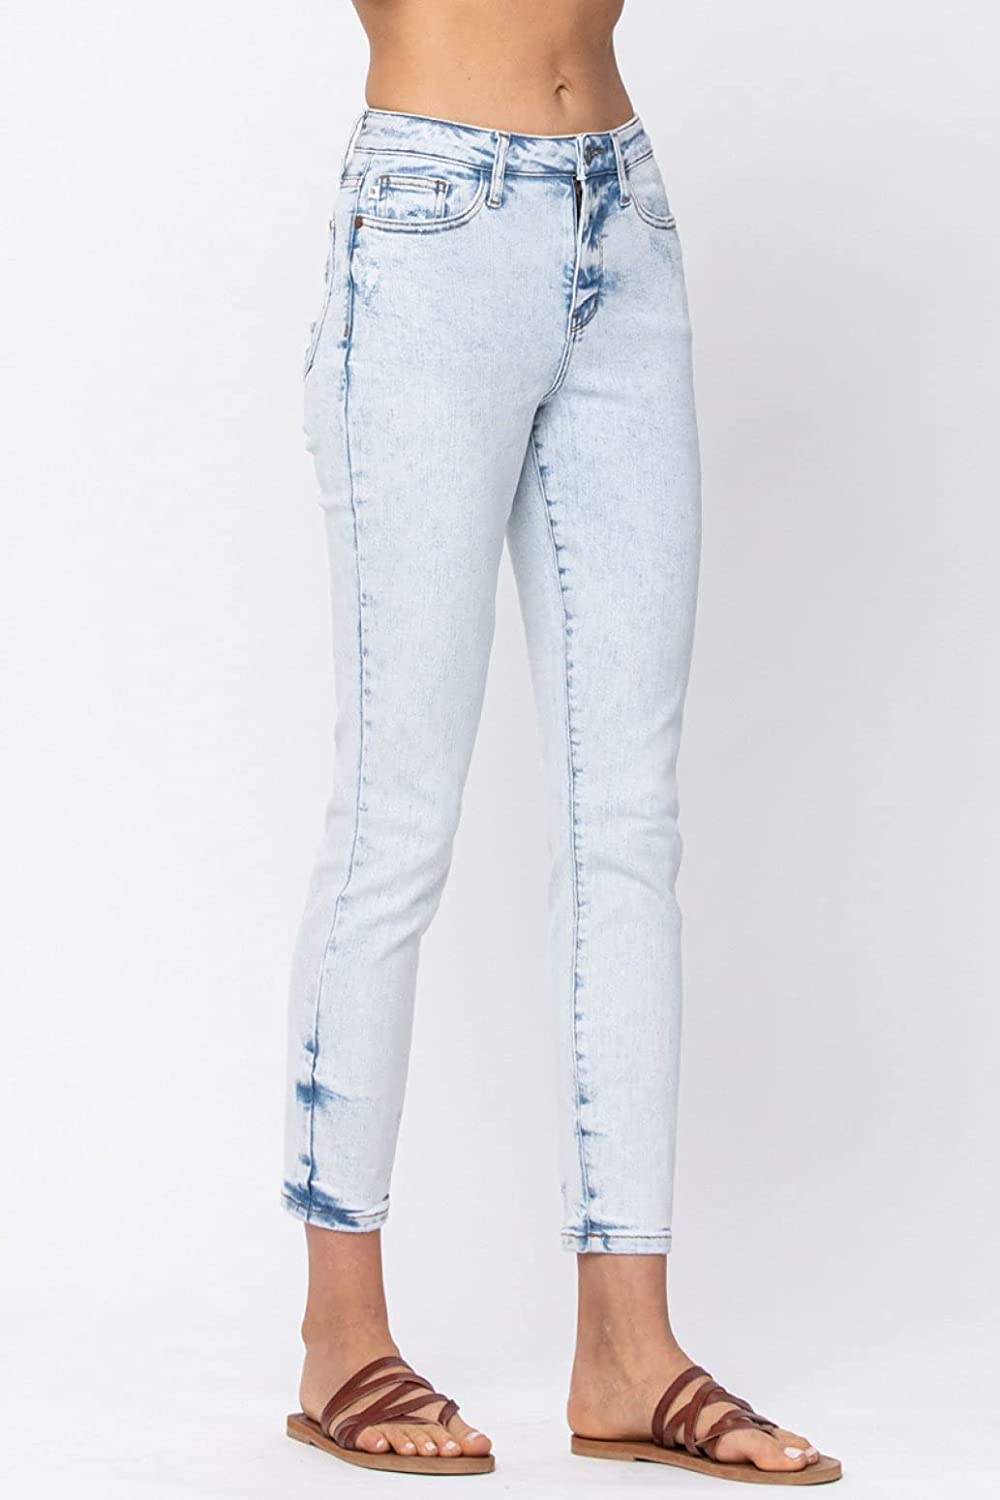 Judy Blue Slim Fit Ultra Light Blue Acid Wash High Waist Jeans! Your New Favorite Slim fit! (Style: 88241)